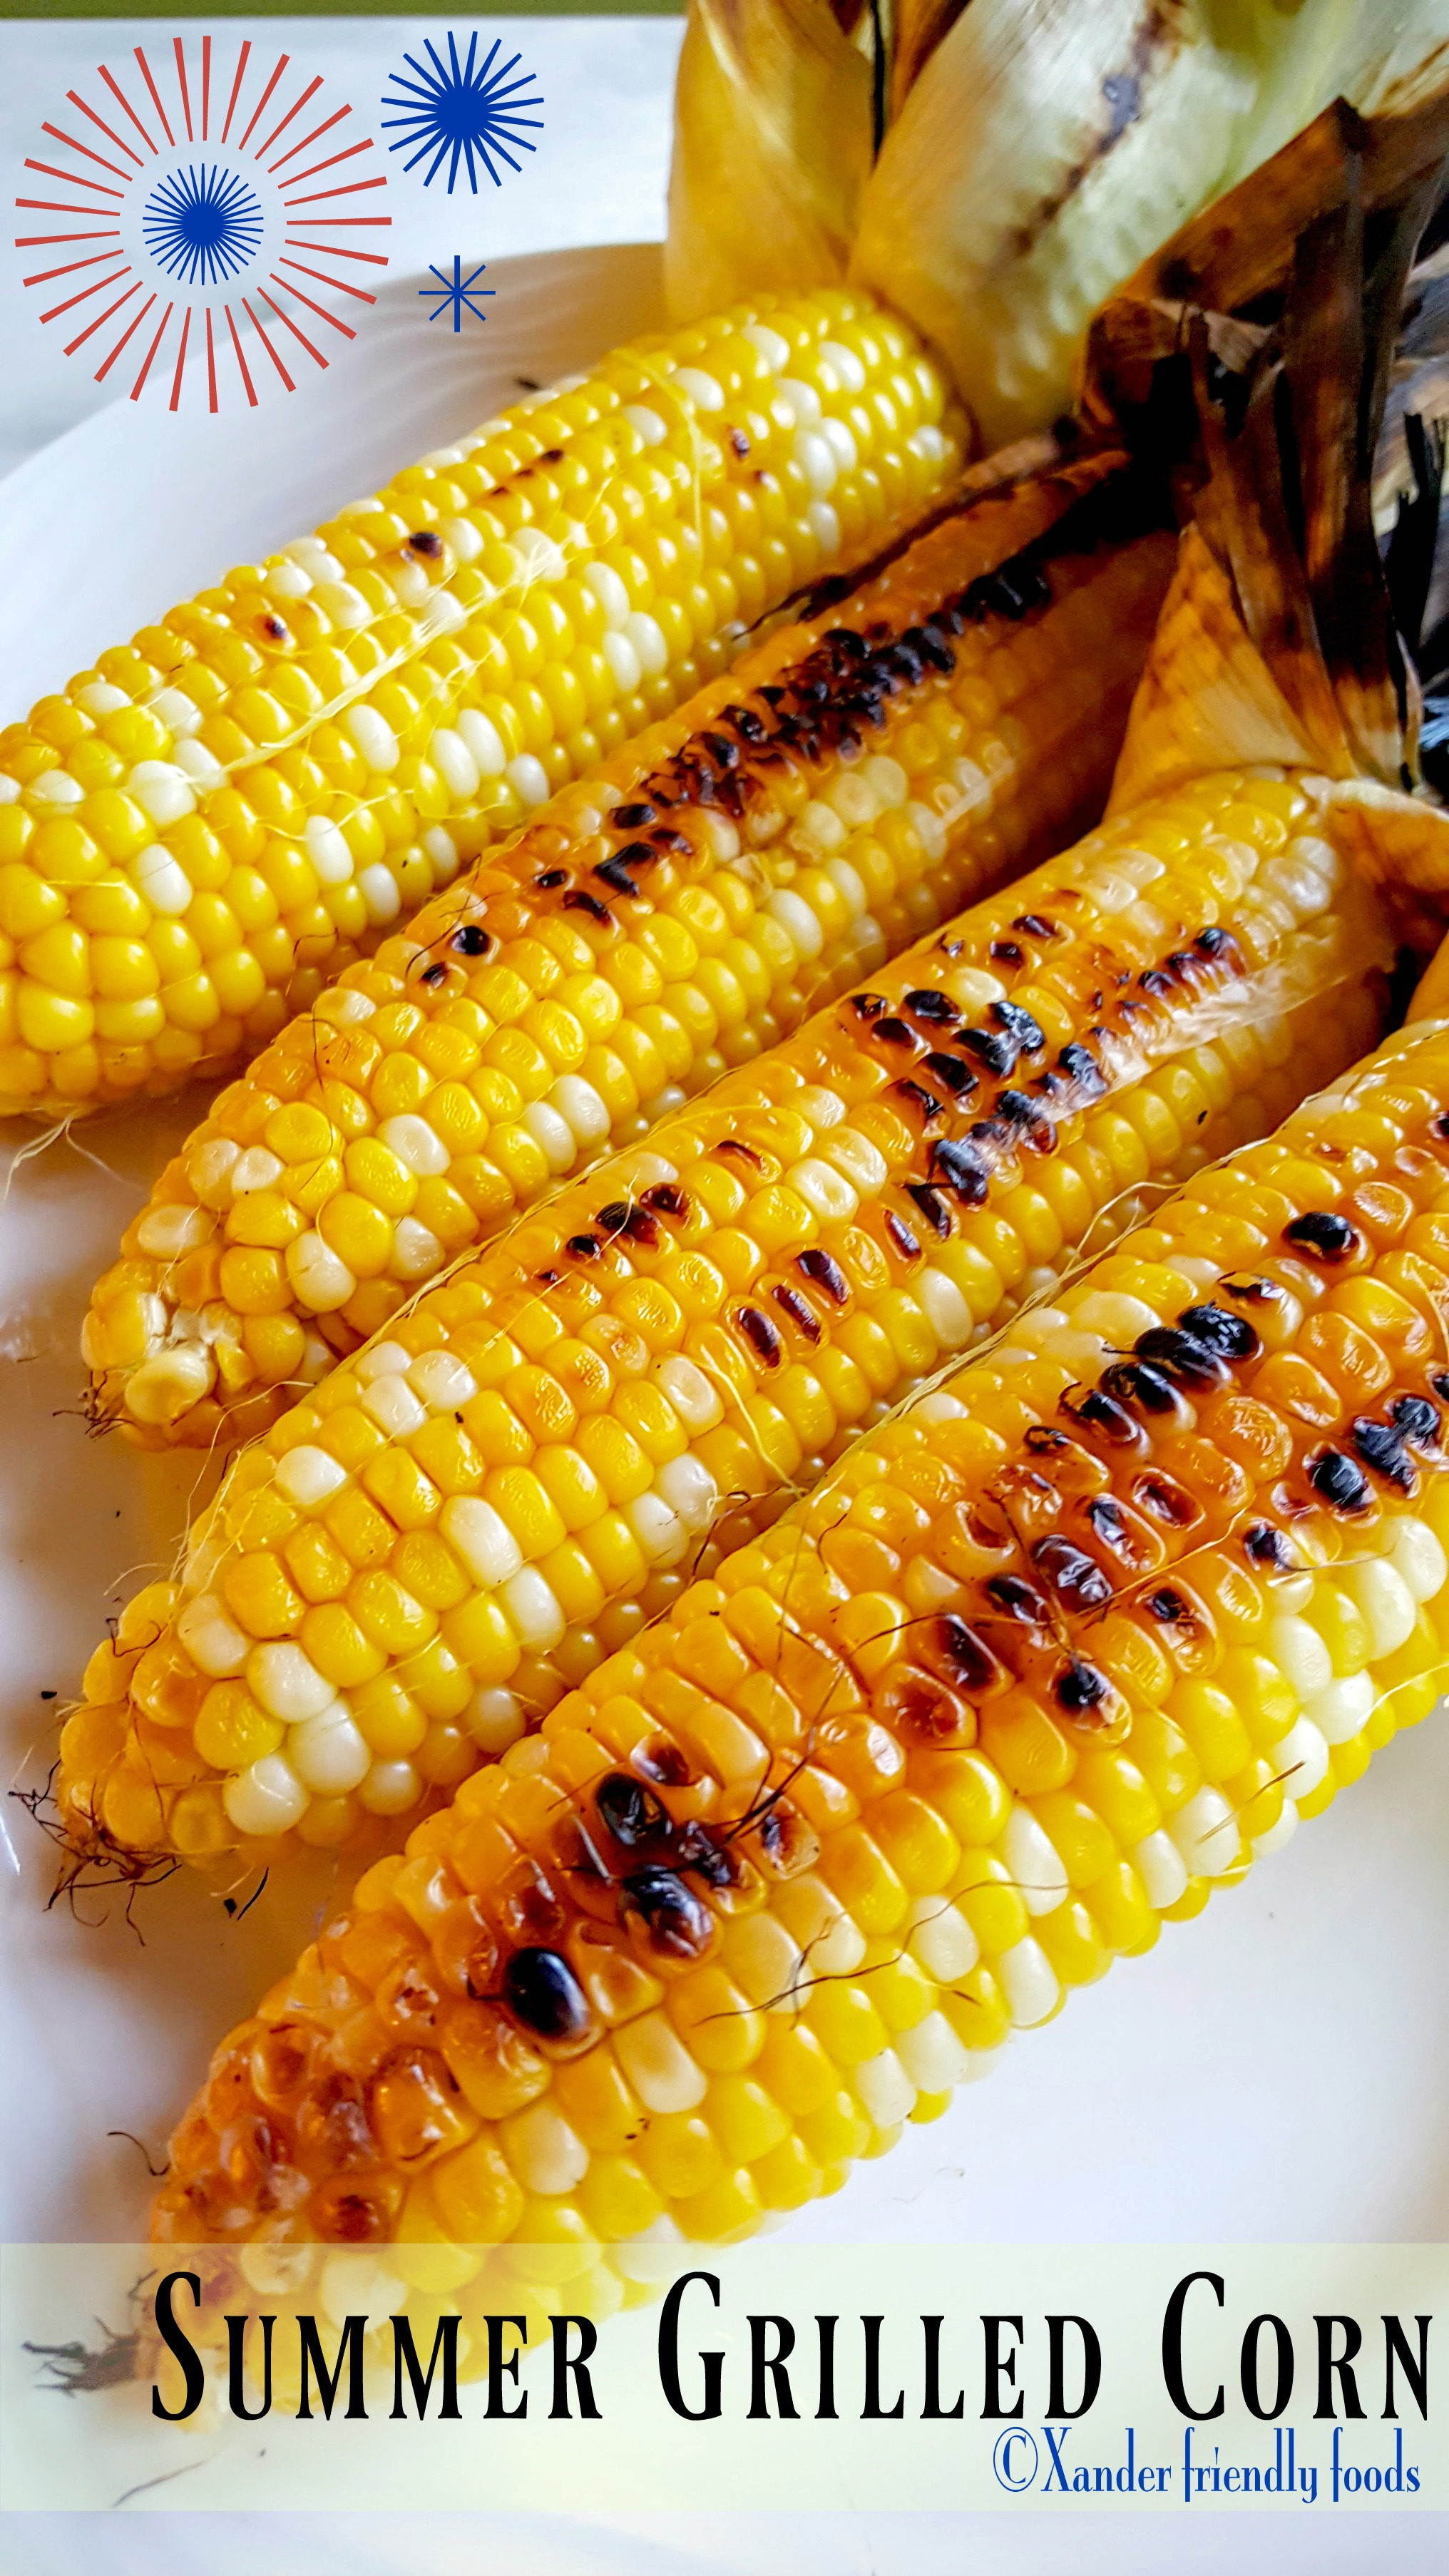 Summer corn is sweeter when steamed within its own husks and grilled to perfection